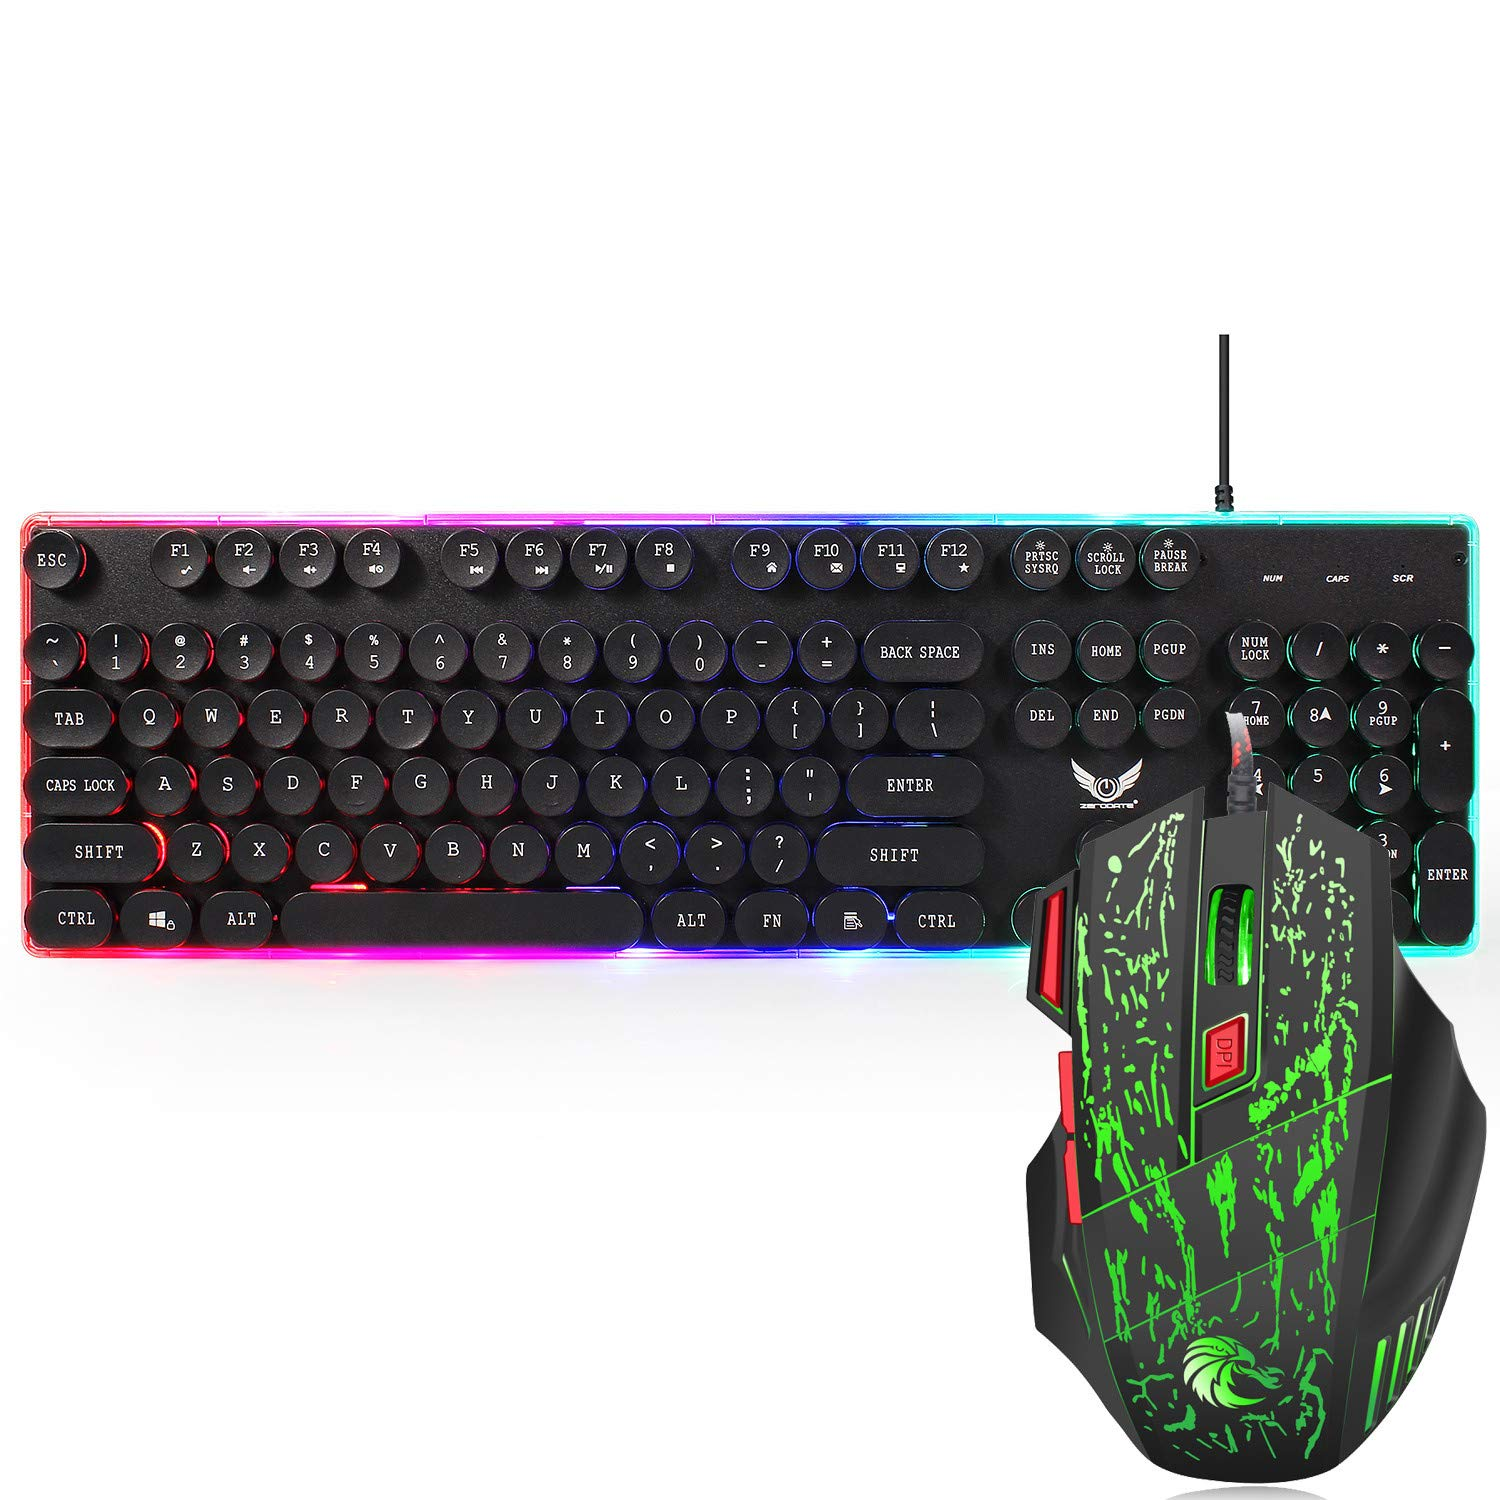 Game Keyboard and Mouse,Sunsee ZERODATE J40 Wired Keyboard Mouse 104 Keys Ergonomic for Typing Games Compatible by SUNSEE ELECTRONICS (Image #6)